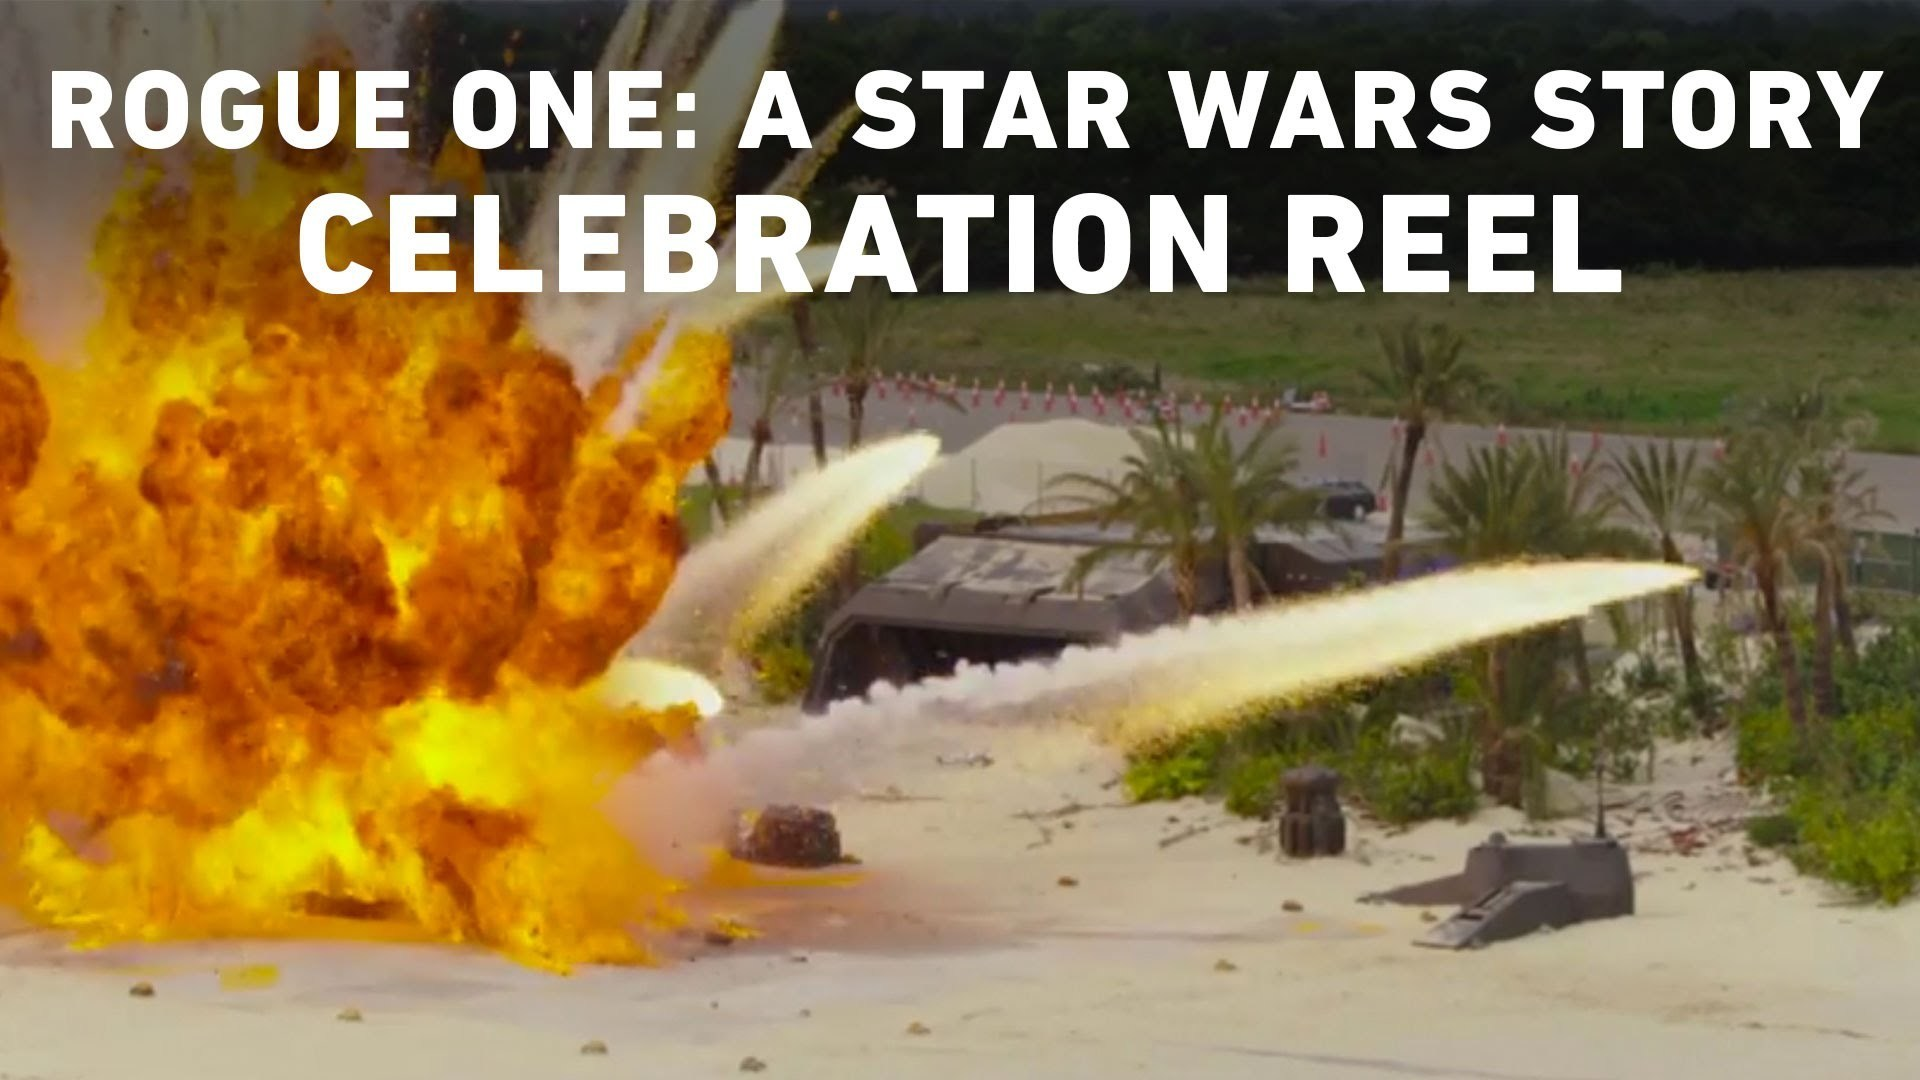 Rogue One: A Star Wars Story Celebration Reel